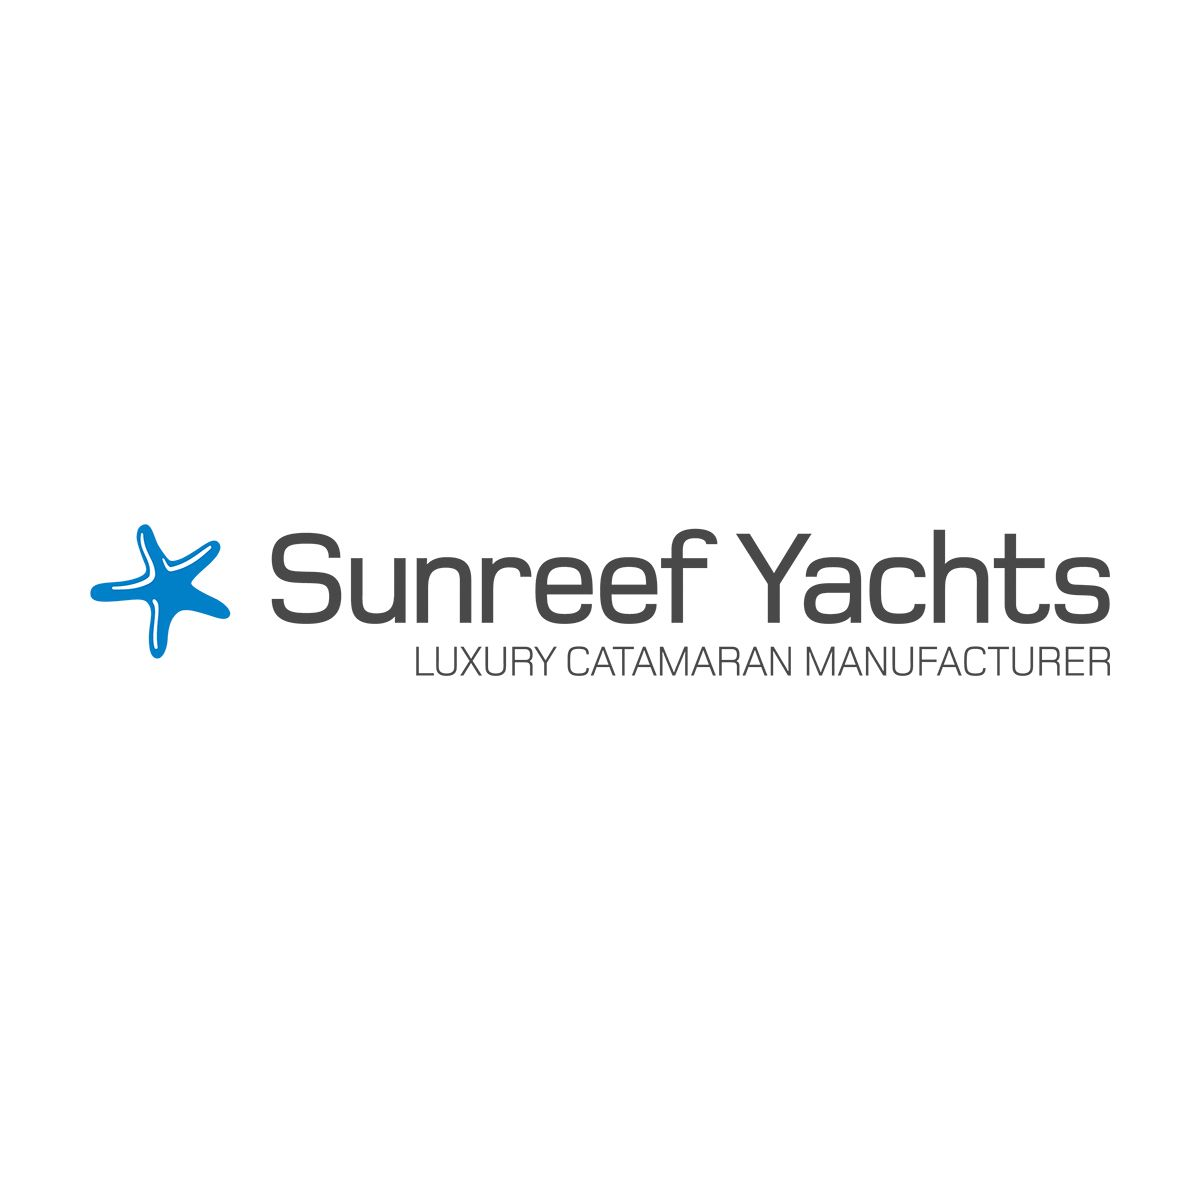 SUNREEF YACHTS/ SUNREEF VENTURE S.A.